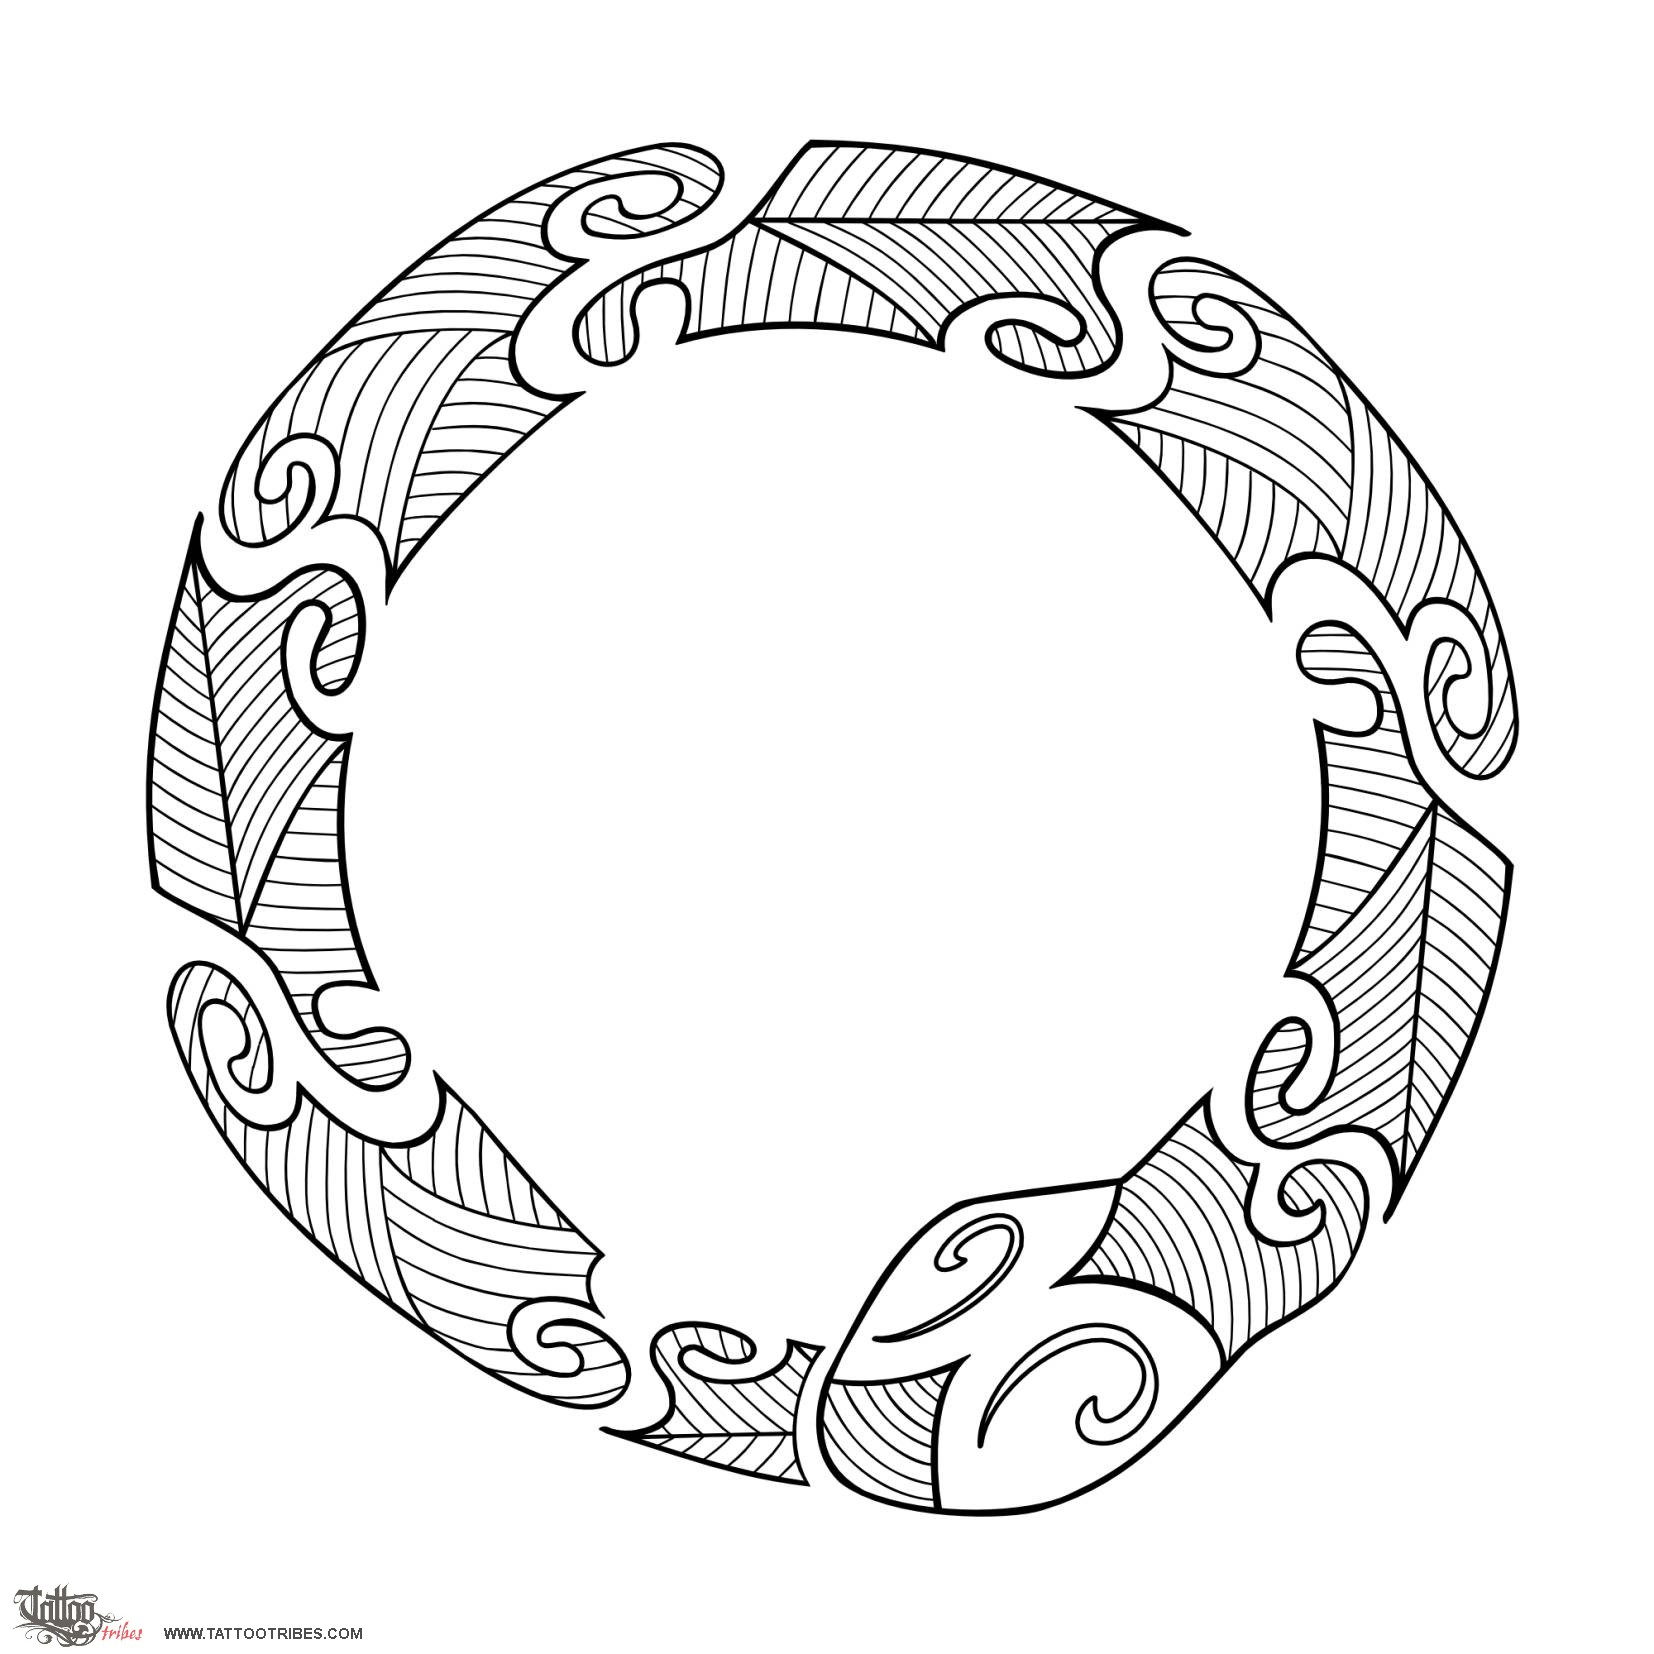 Ouroboros Tattoo Ouroboros Tattoo